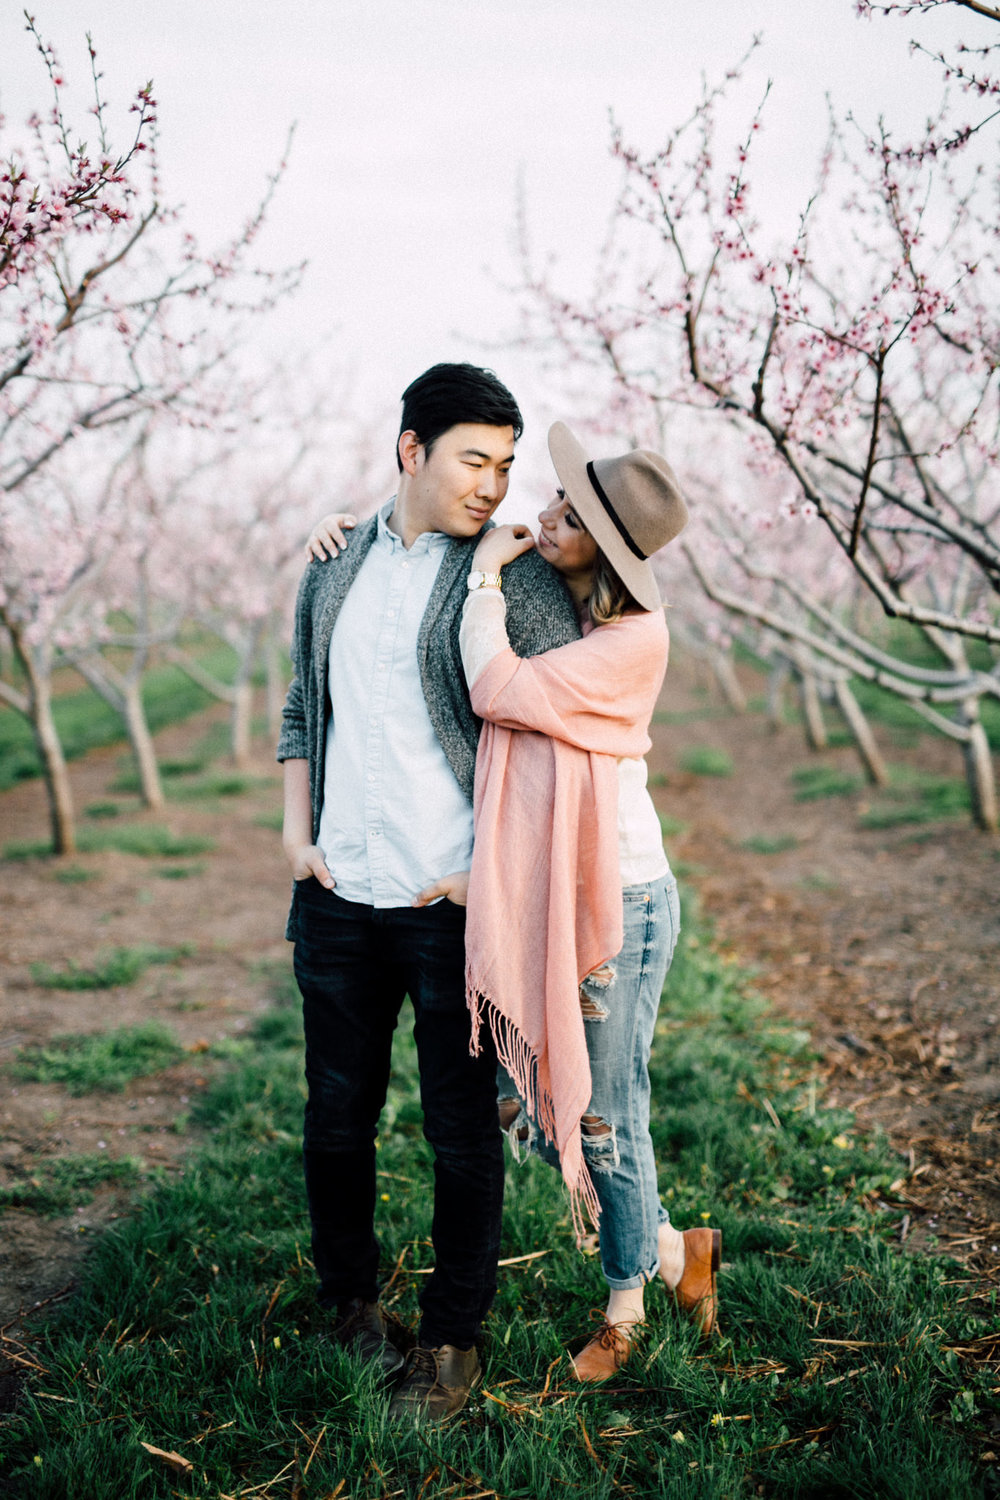 Niagara-Portrait-Session-Niagara-On-The-Lake-Cherry-Blossoms-photography-by-Simply-Lace-Photography-015.JPG